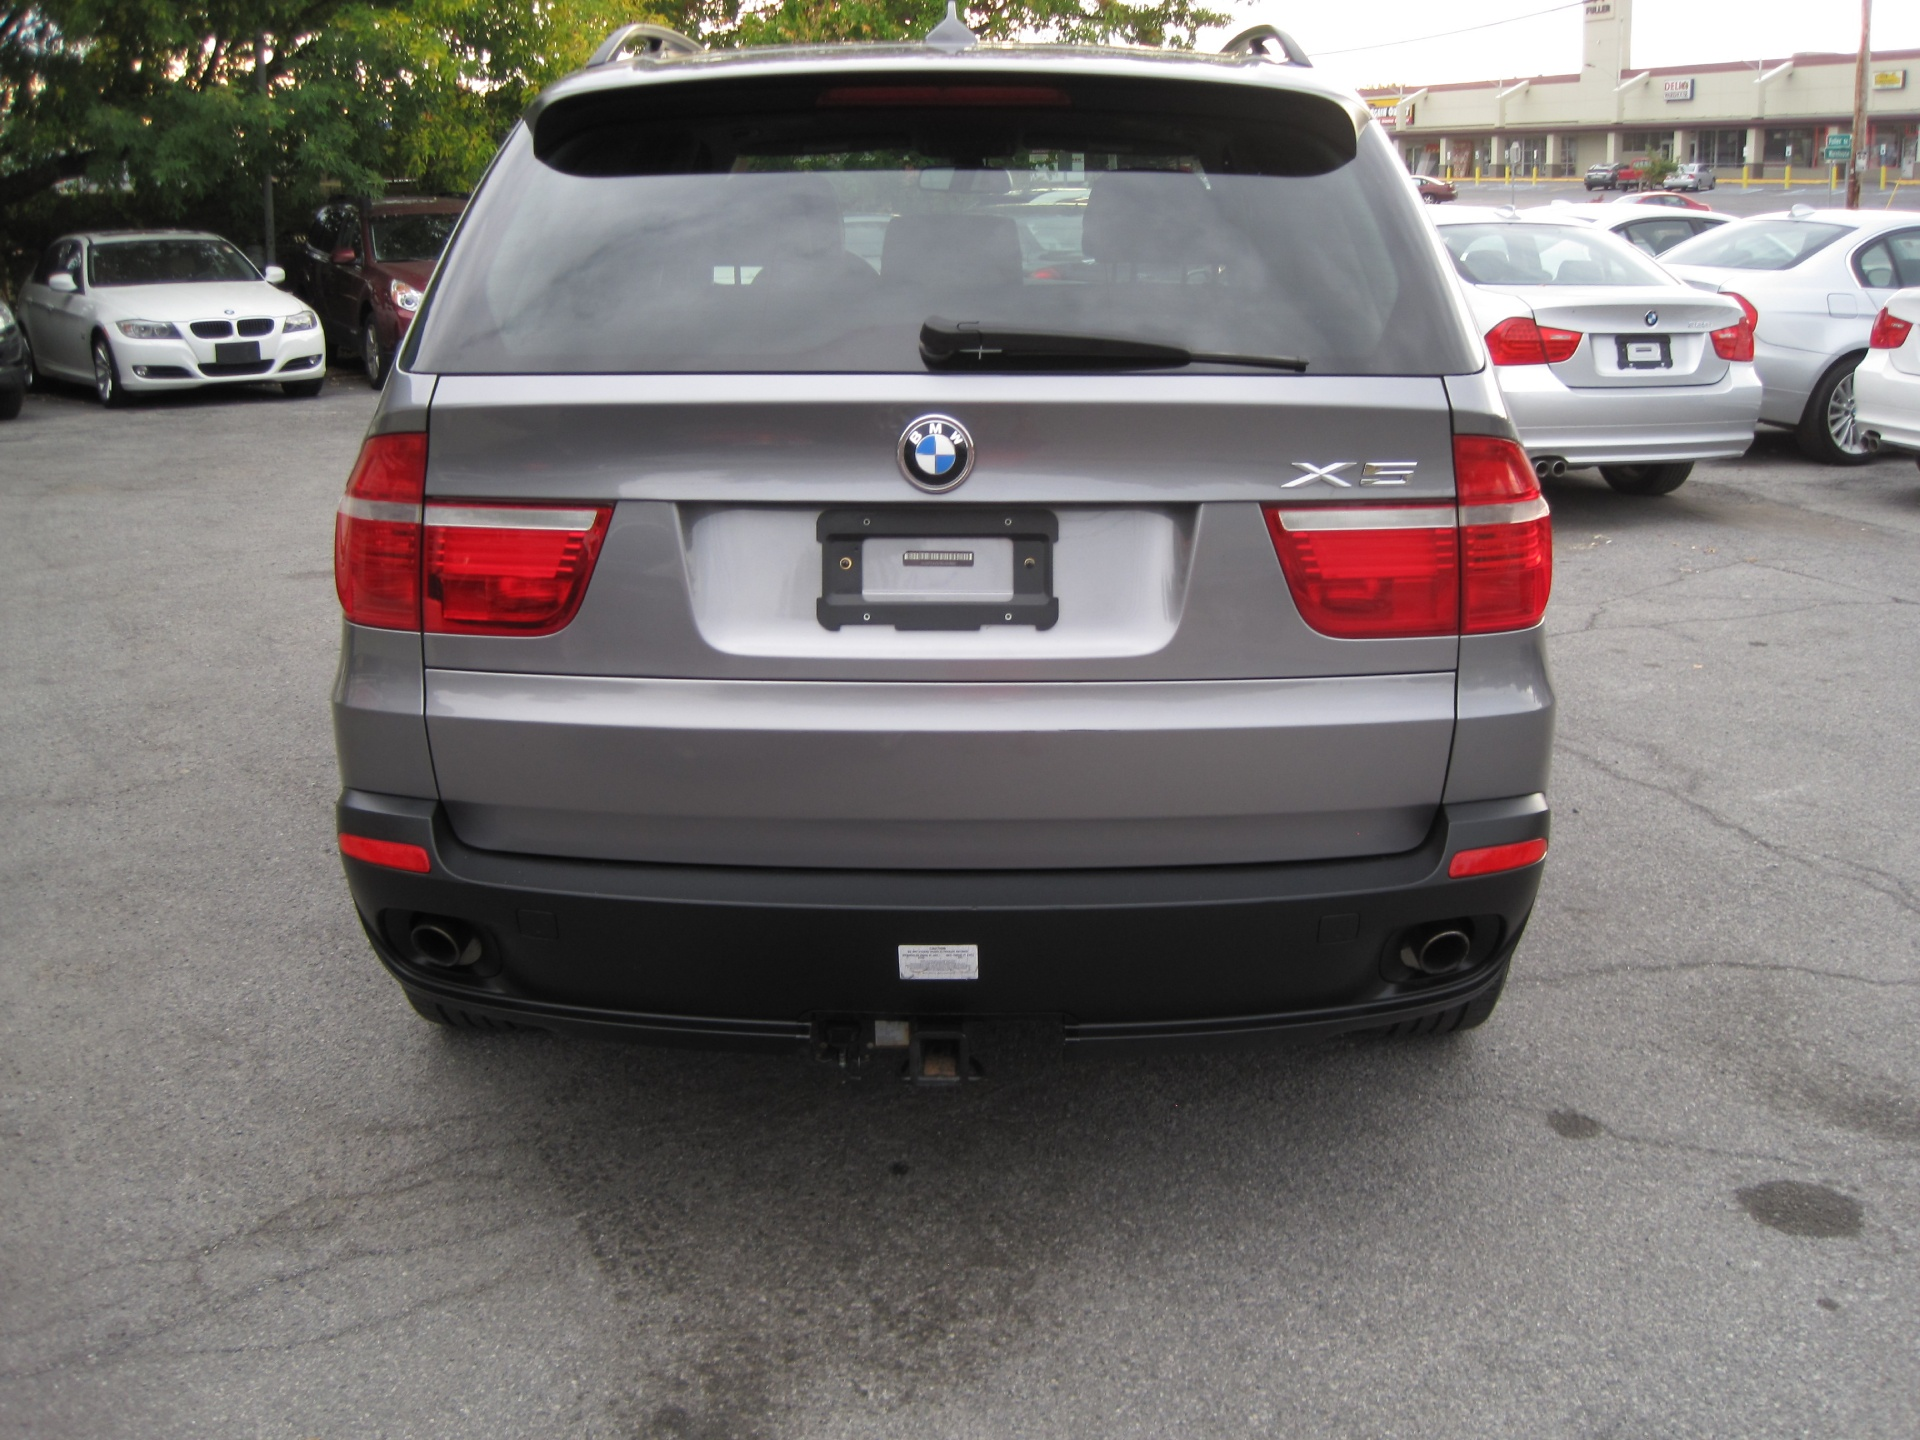 2008 bmw x5 navigation premium cold weather pkgs stock 14173 for sale near albany ny. Black Bedroom Furniture Sets. Home Design Ideas